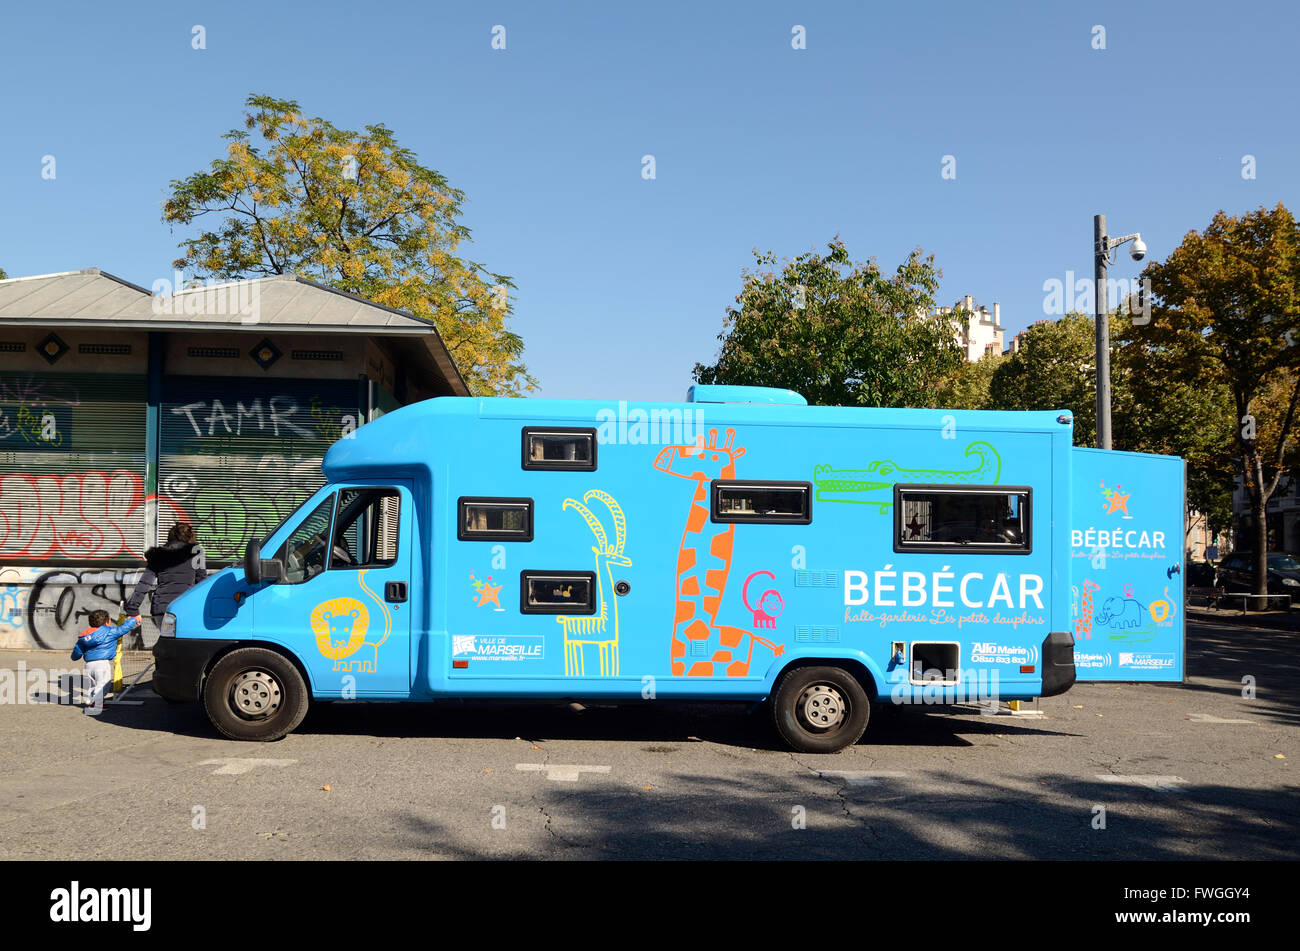 Mobile Crèche, Day Nursery or Play School in Converted Bus or Truck known as Bébécar or Babycar Marseille - Stock Image